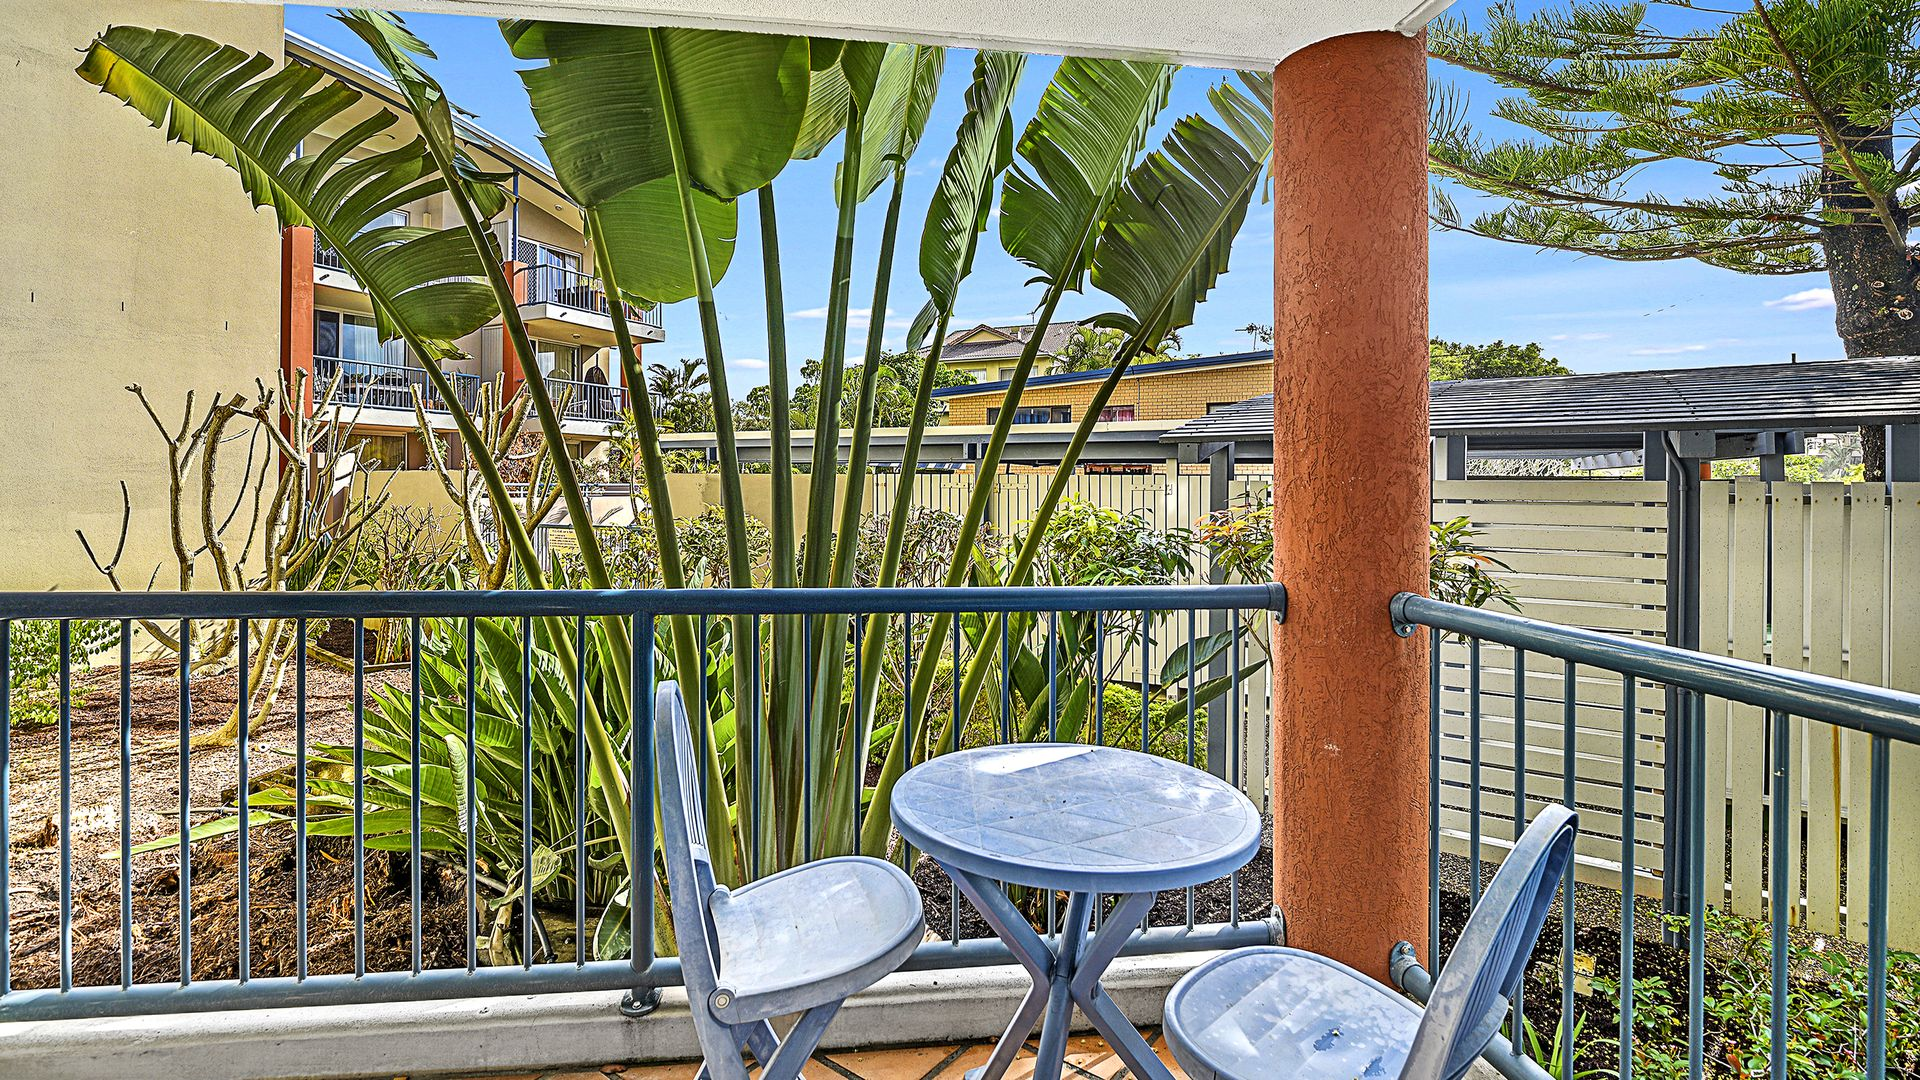 5/100 Petrel Ave, Mermaid Beach QLD 4218, Image 1